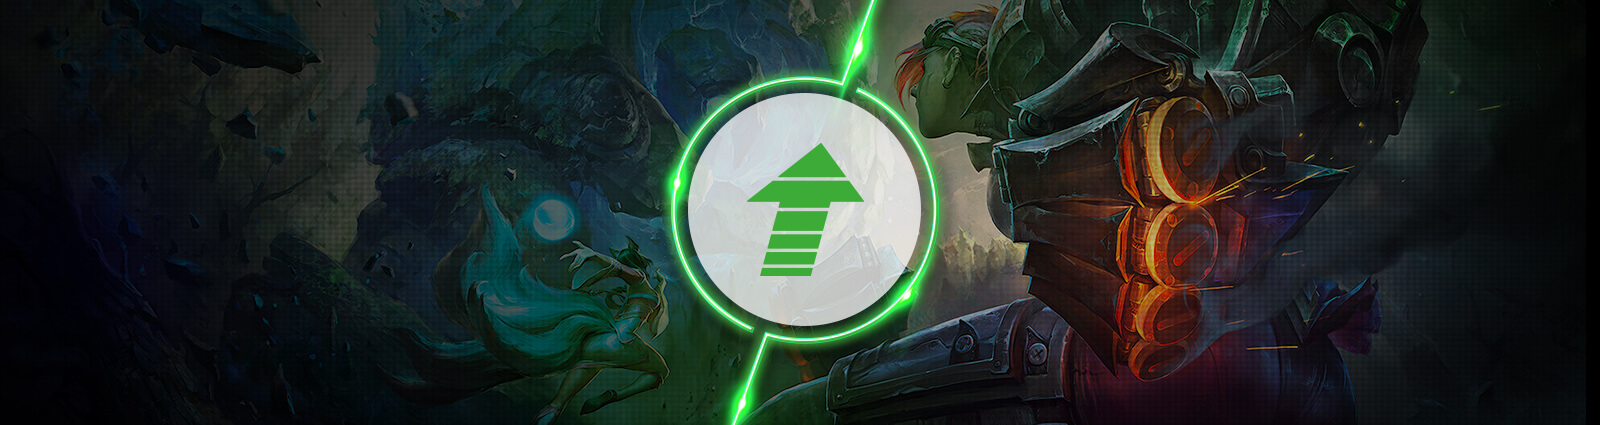 promo page league of legends boost unibet 2019